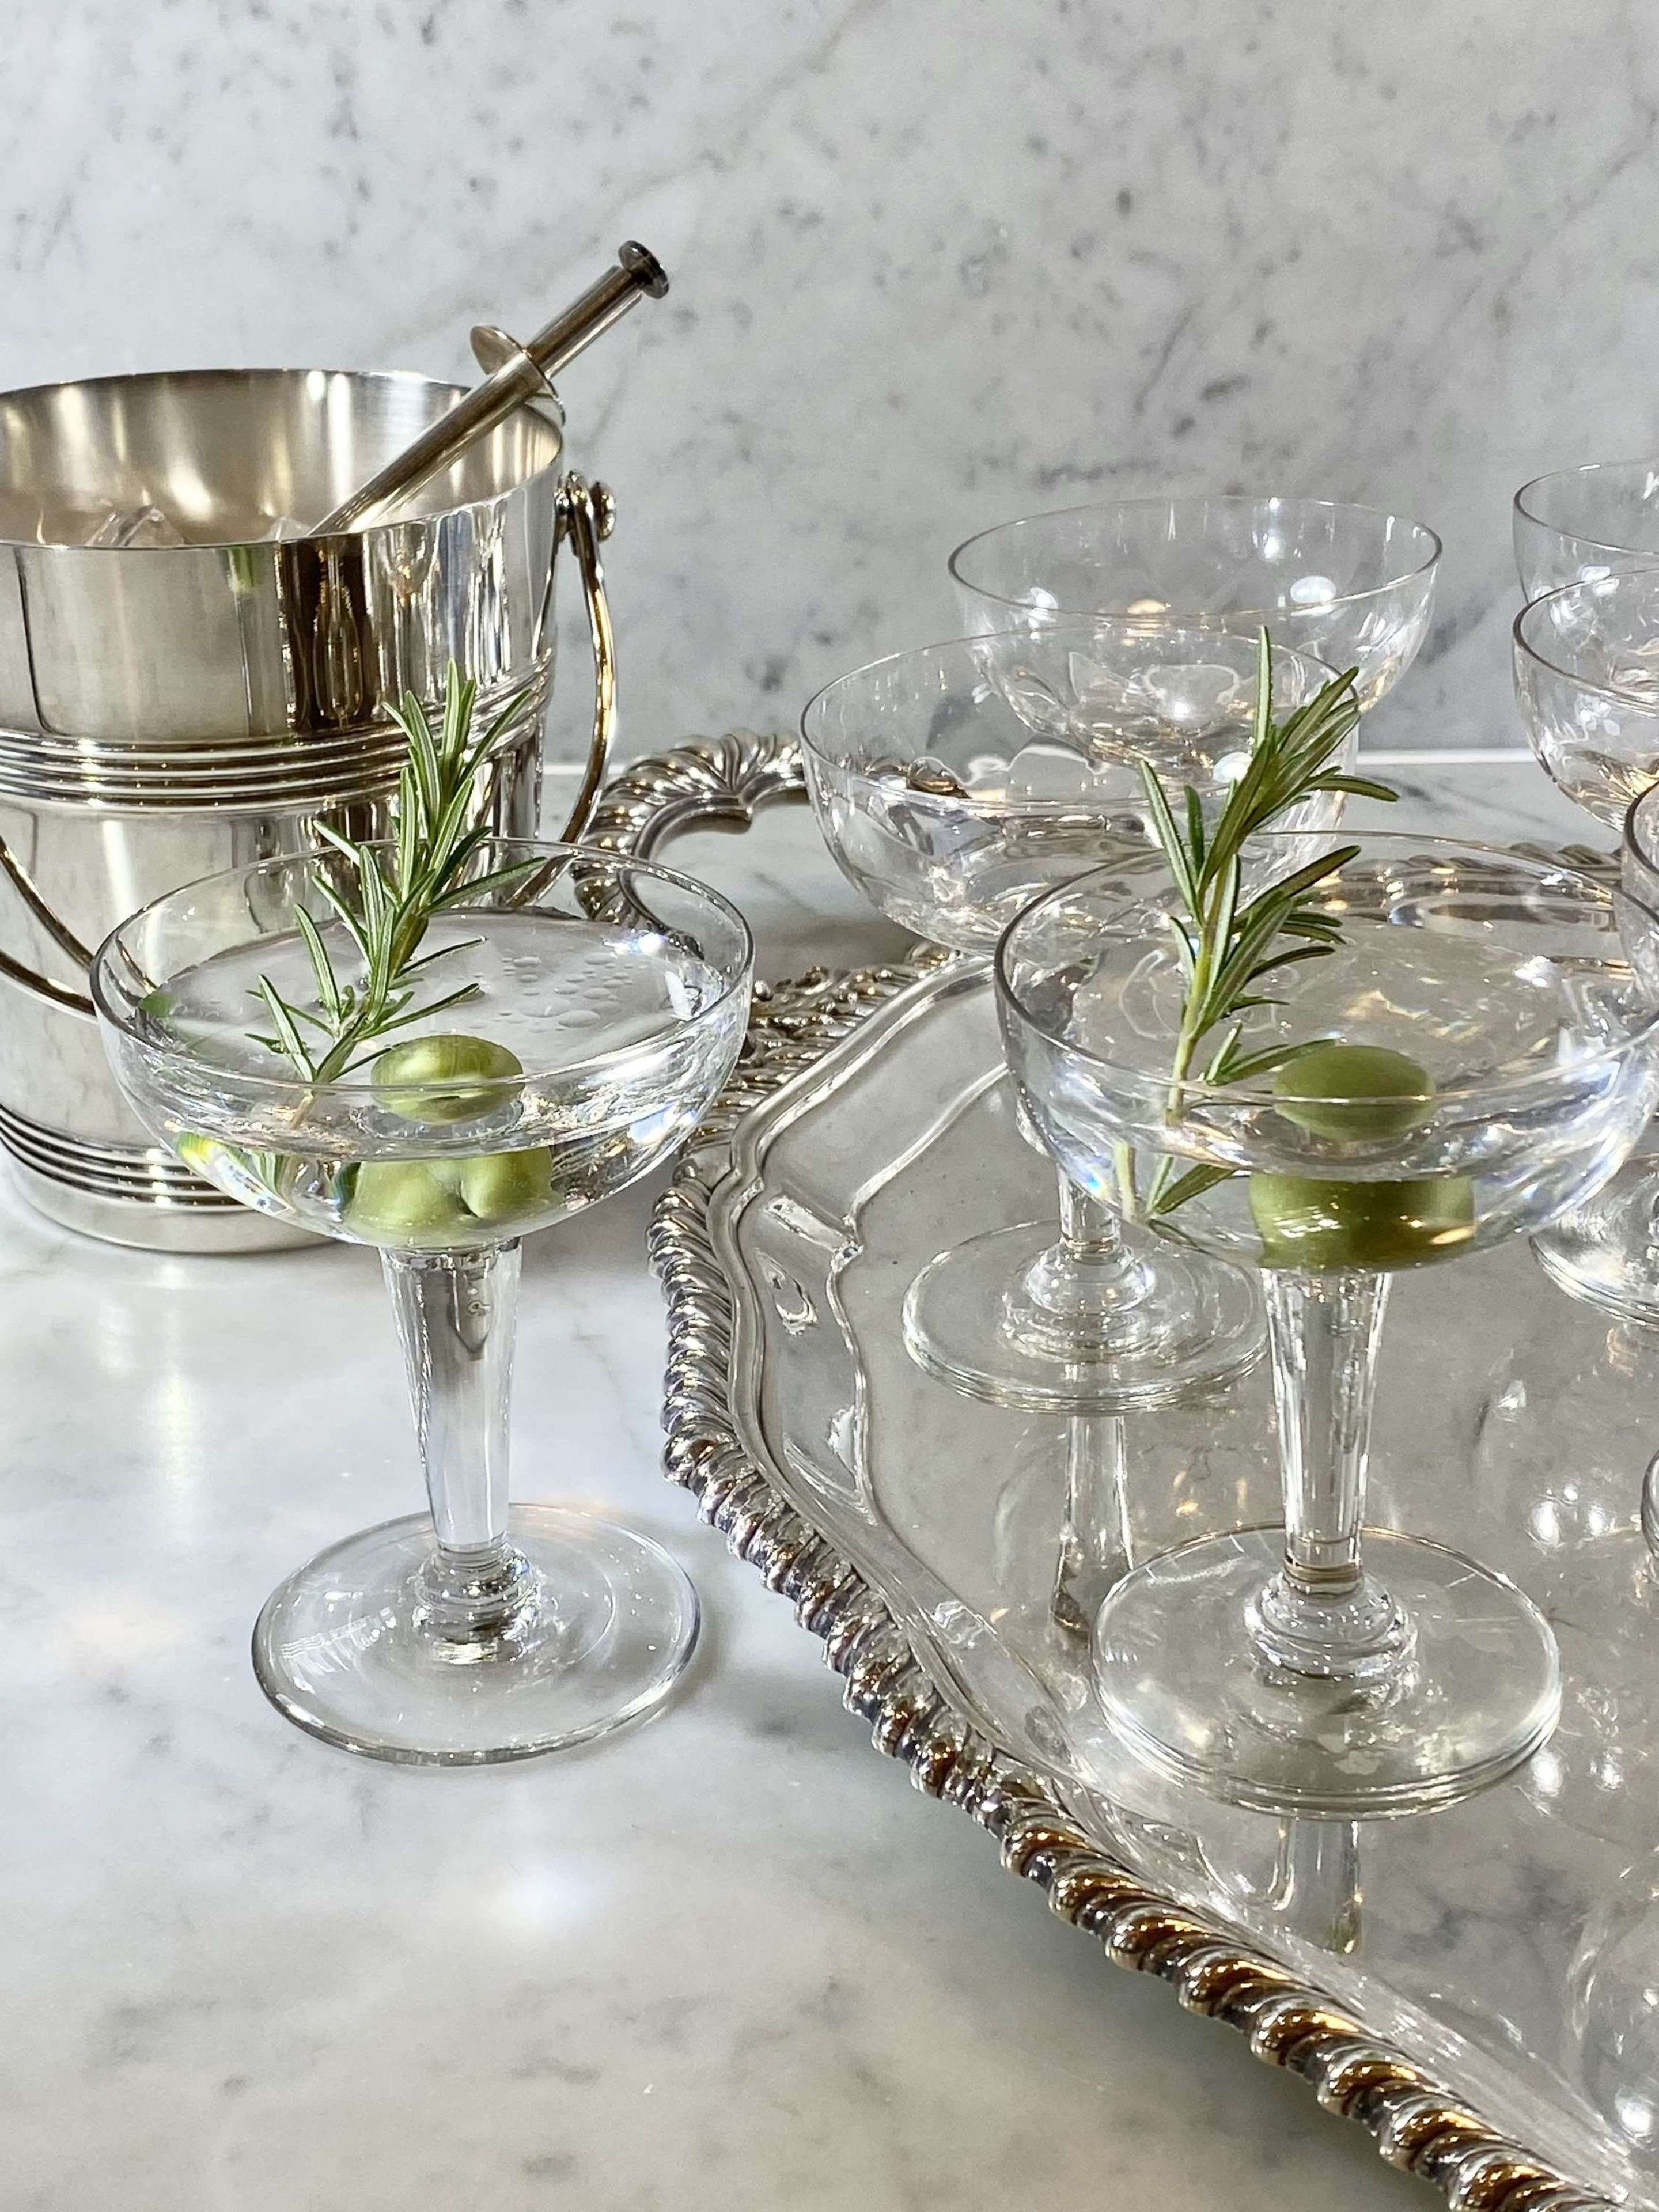 Art Deco Dimple Glass Champagne Or Cocktail Coupes In Antique Wine Glasses Carafes Drinking Glasses